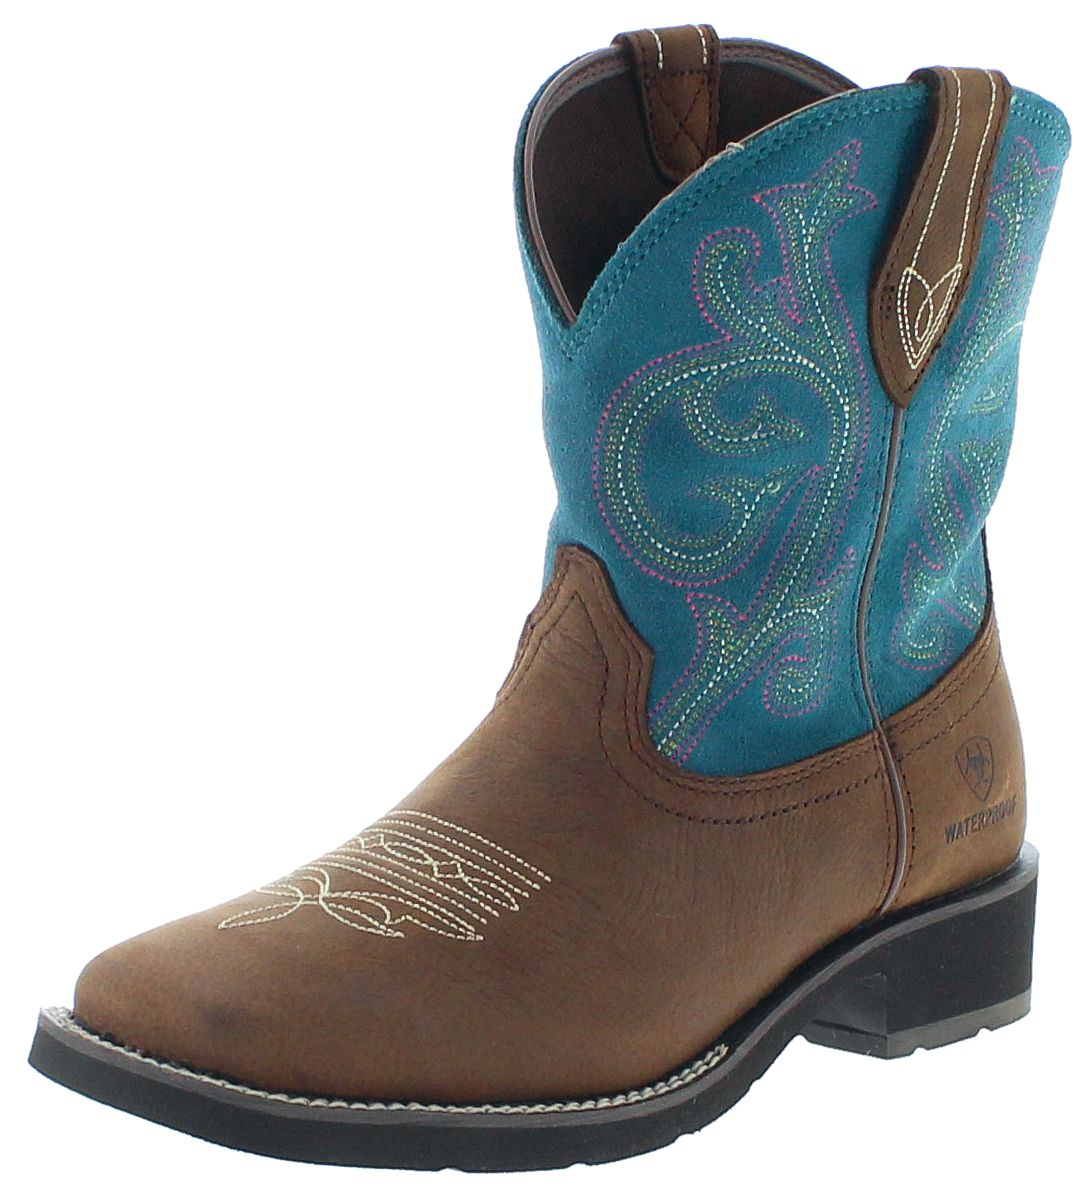 Ariat 21477 SHASTA H2O Brown Turquoise Womens Western Boots - brown turquoise